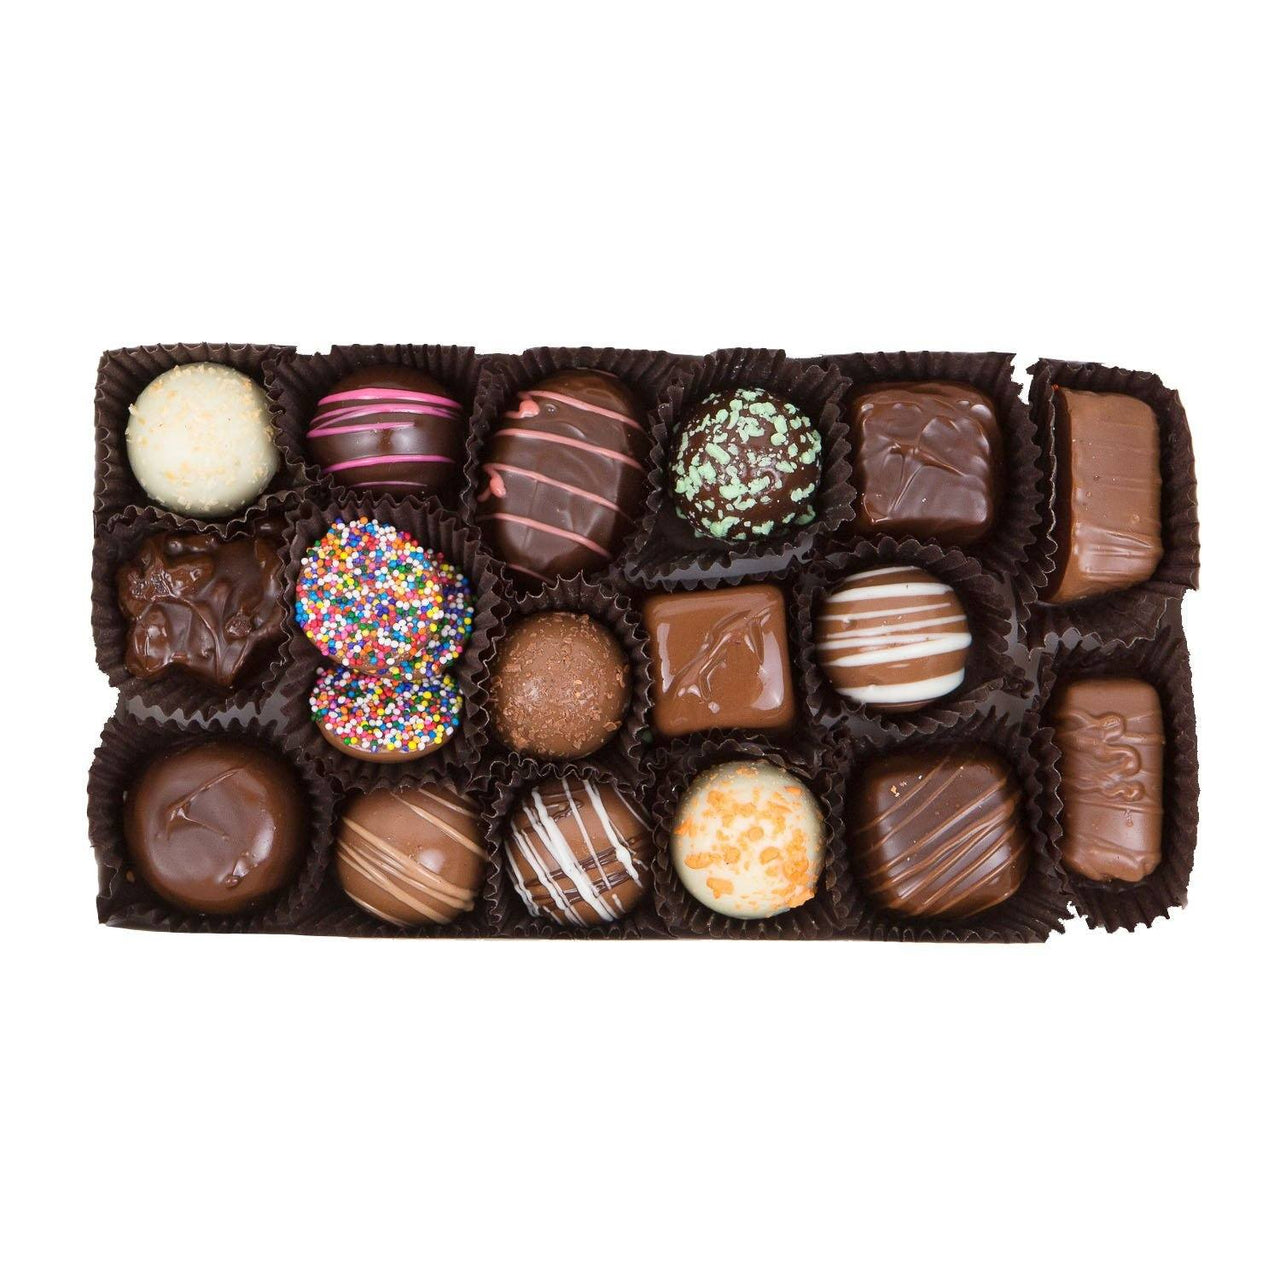 Great Christmas Gifts for Mom  - Chocolate Assortment Gift Box - Jackie's Chocolate (4336371040371)